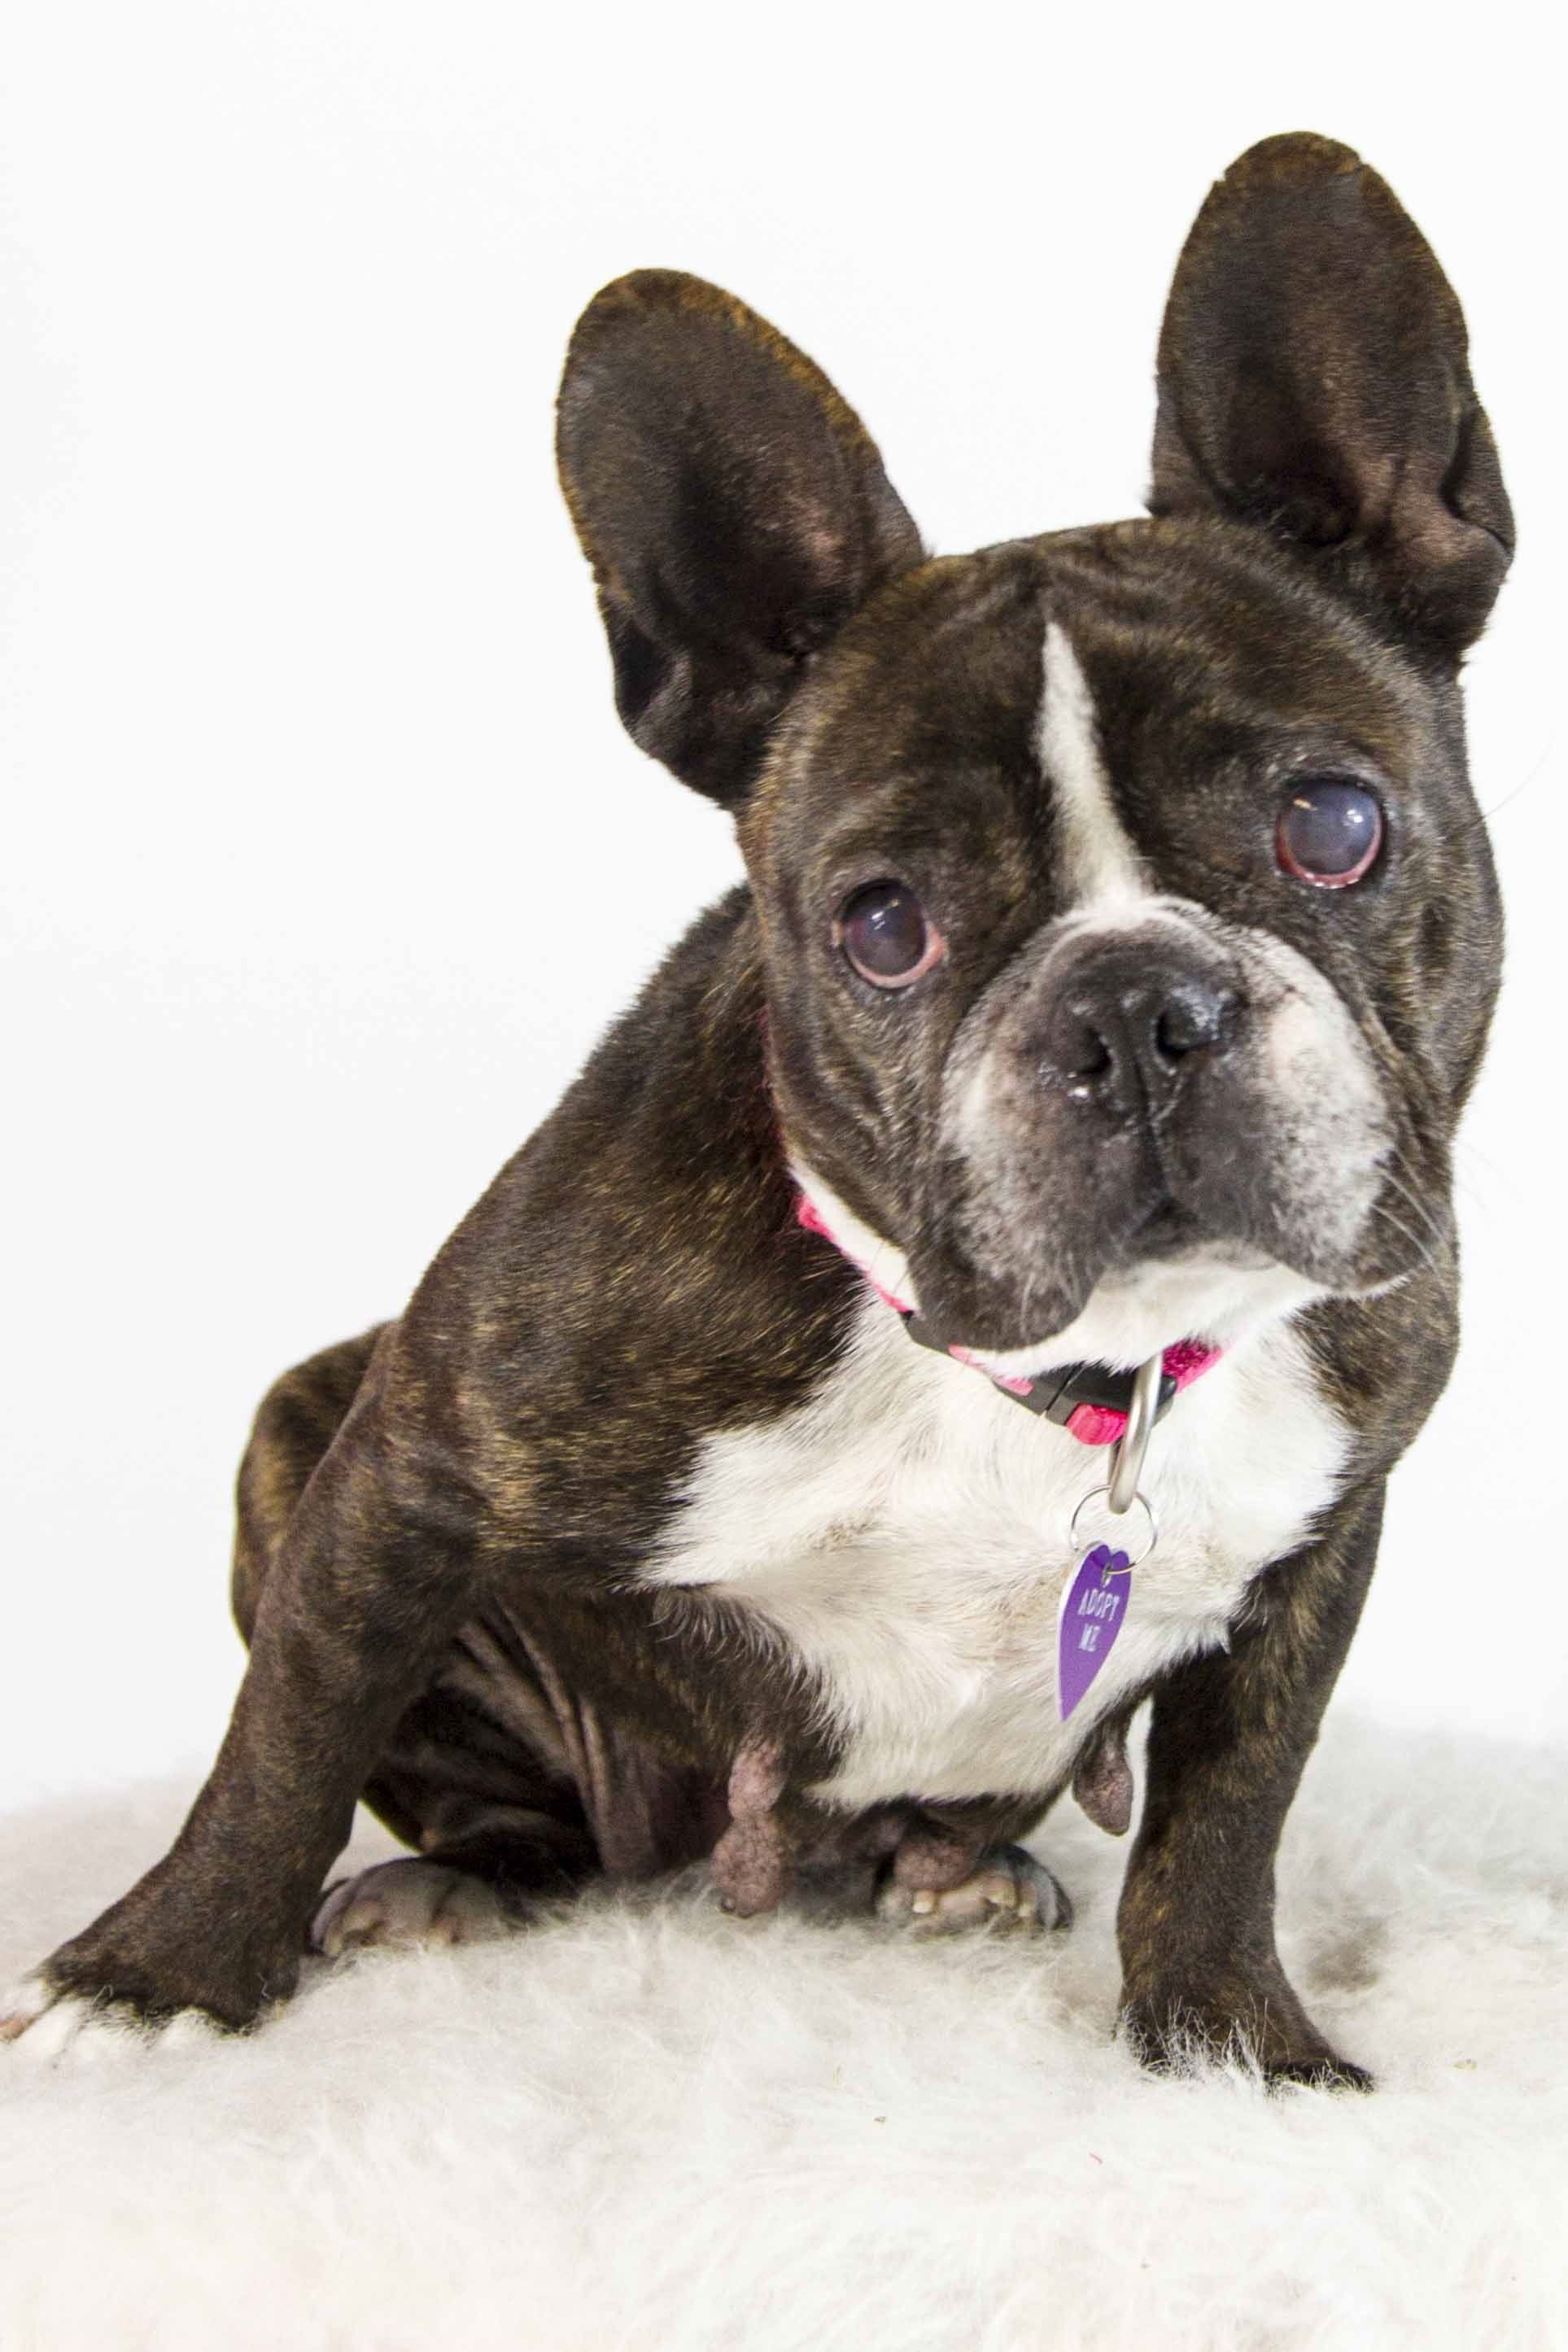 French Bulldog dog for Adoption in St. Louis Park, MN. ADN